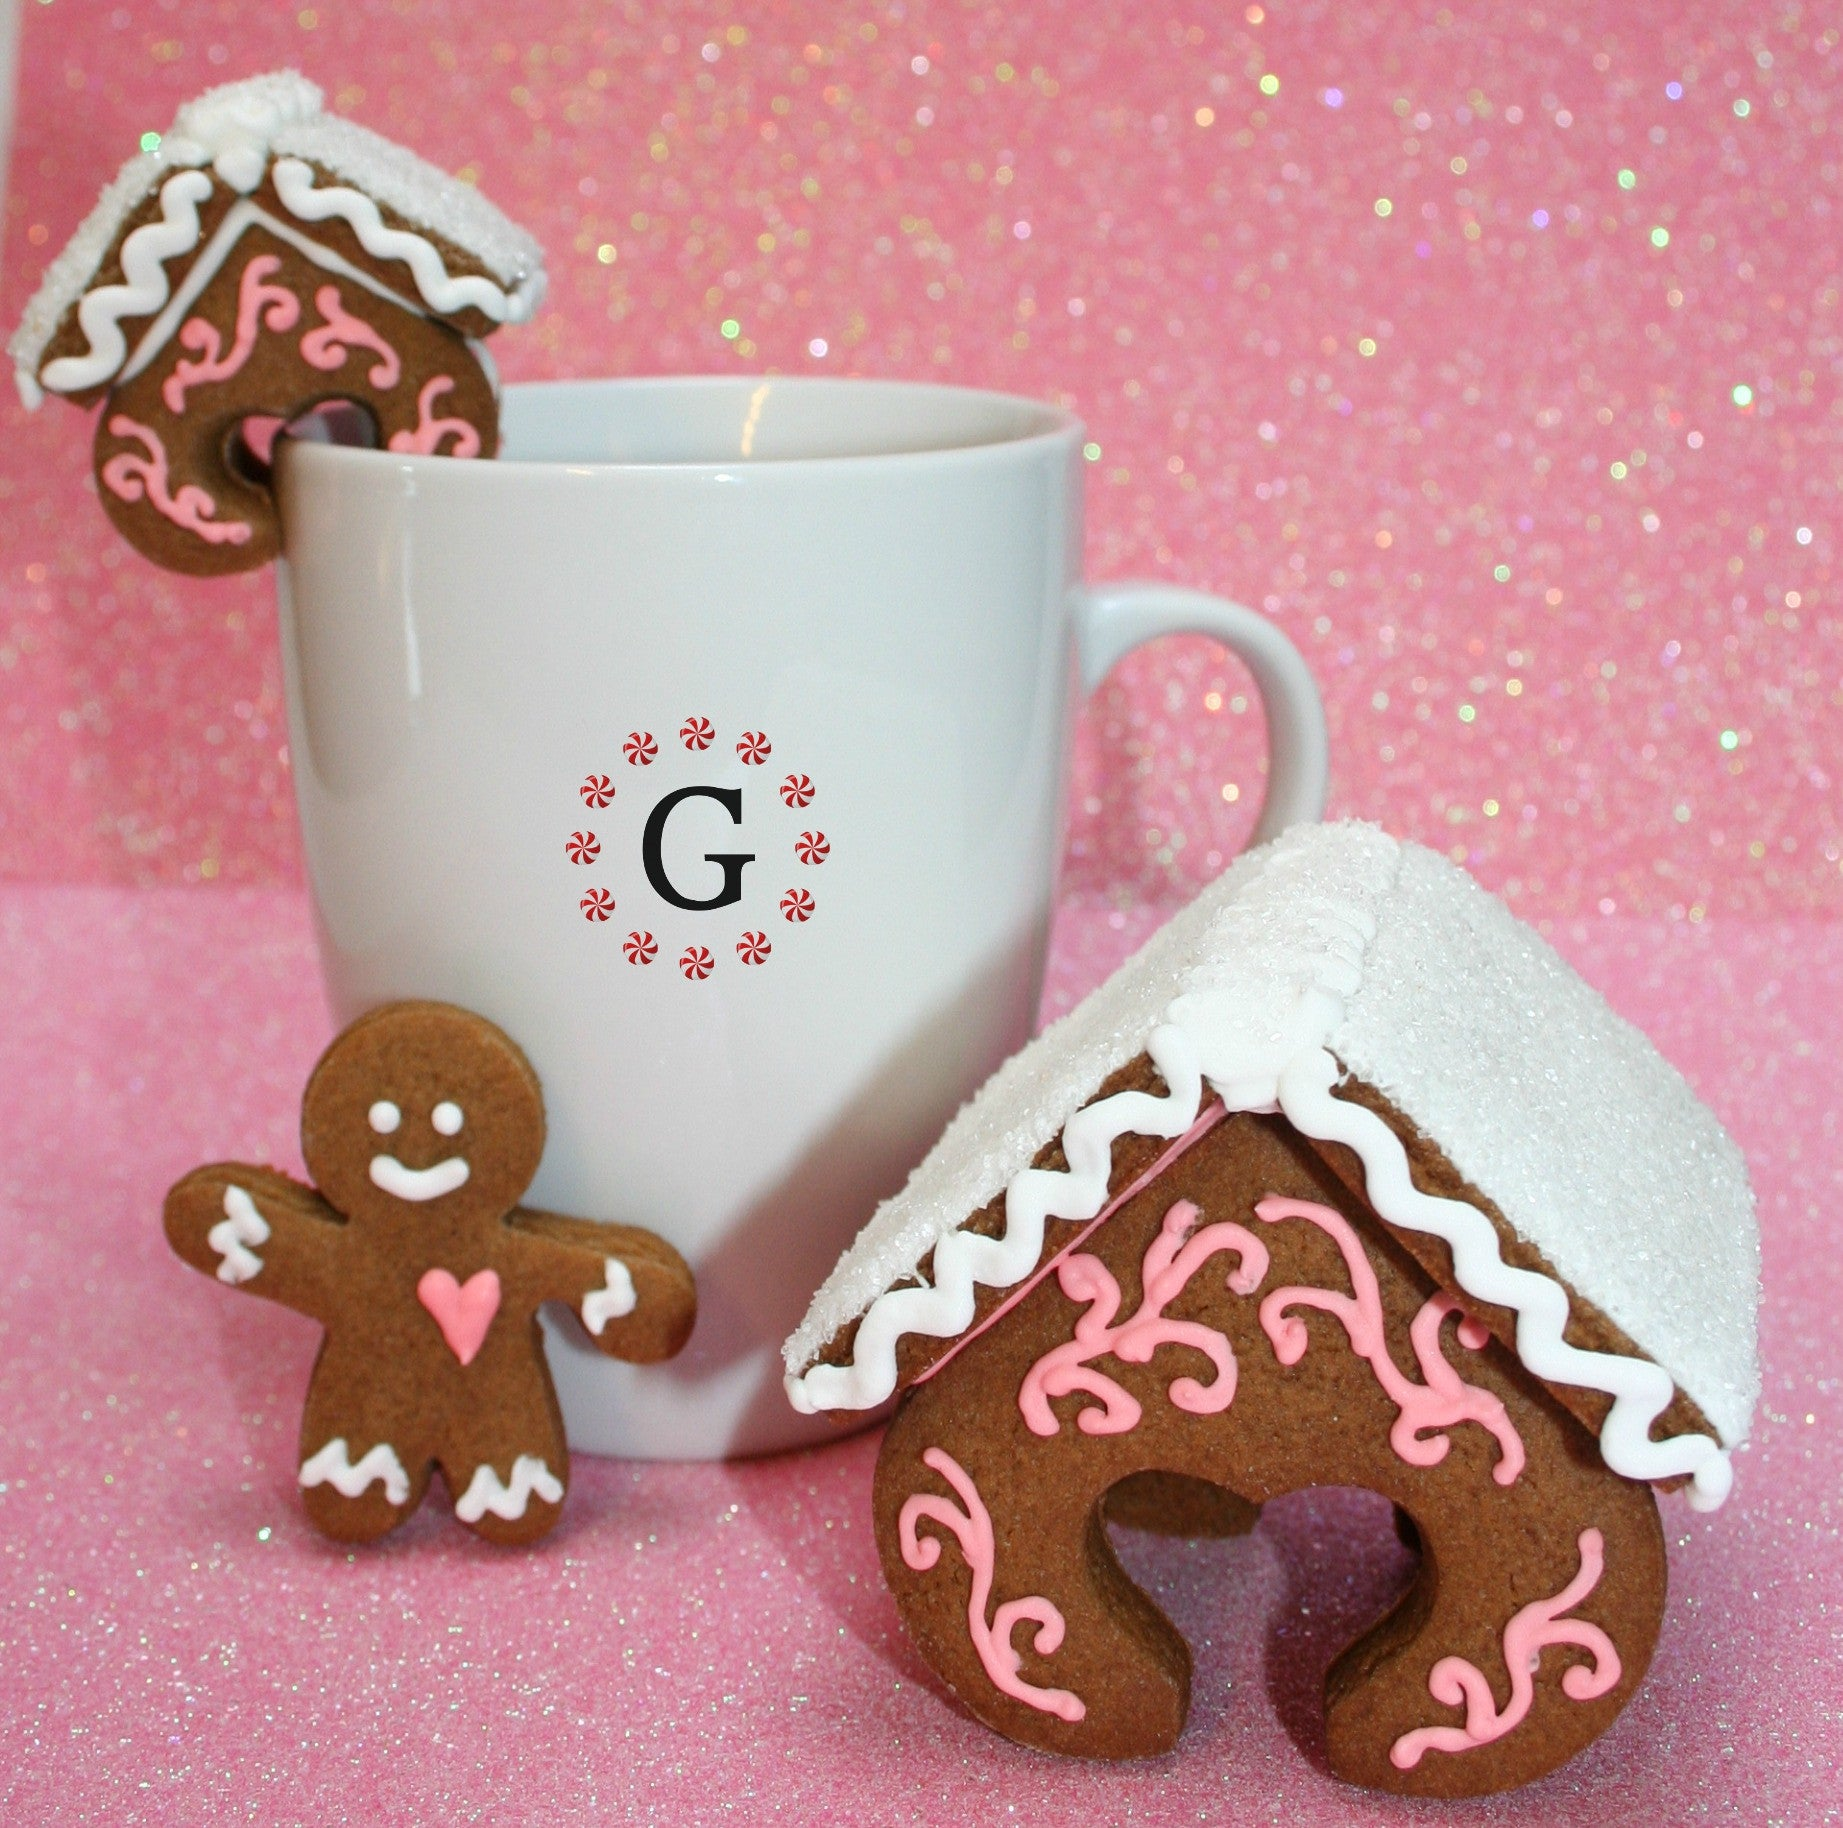 Heart Hugger Gingerbread House Cutter - 3 Size Options